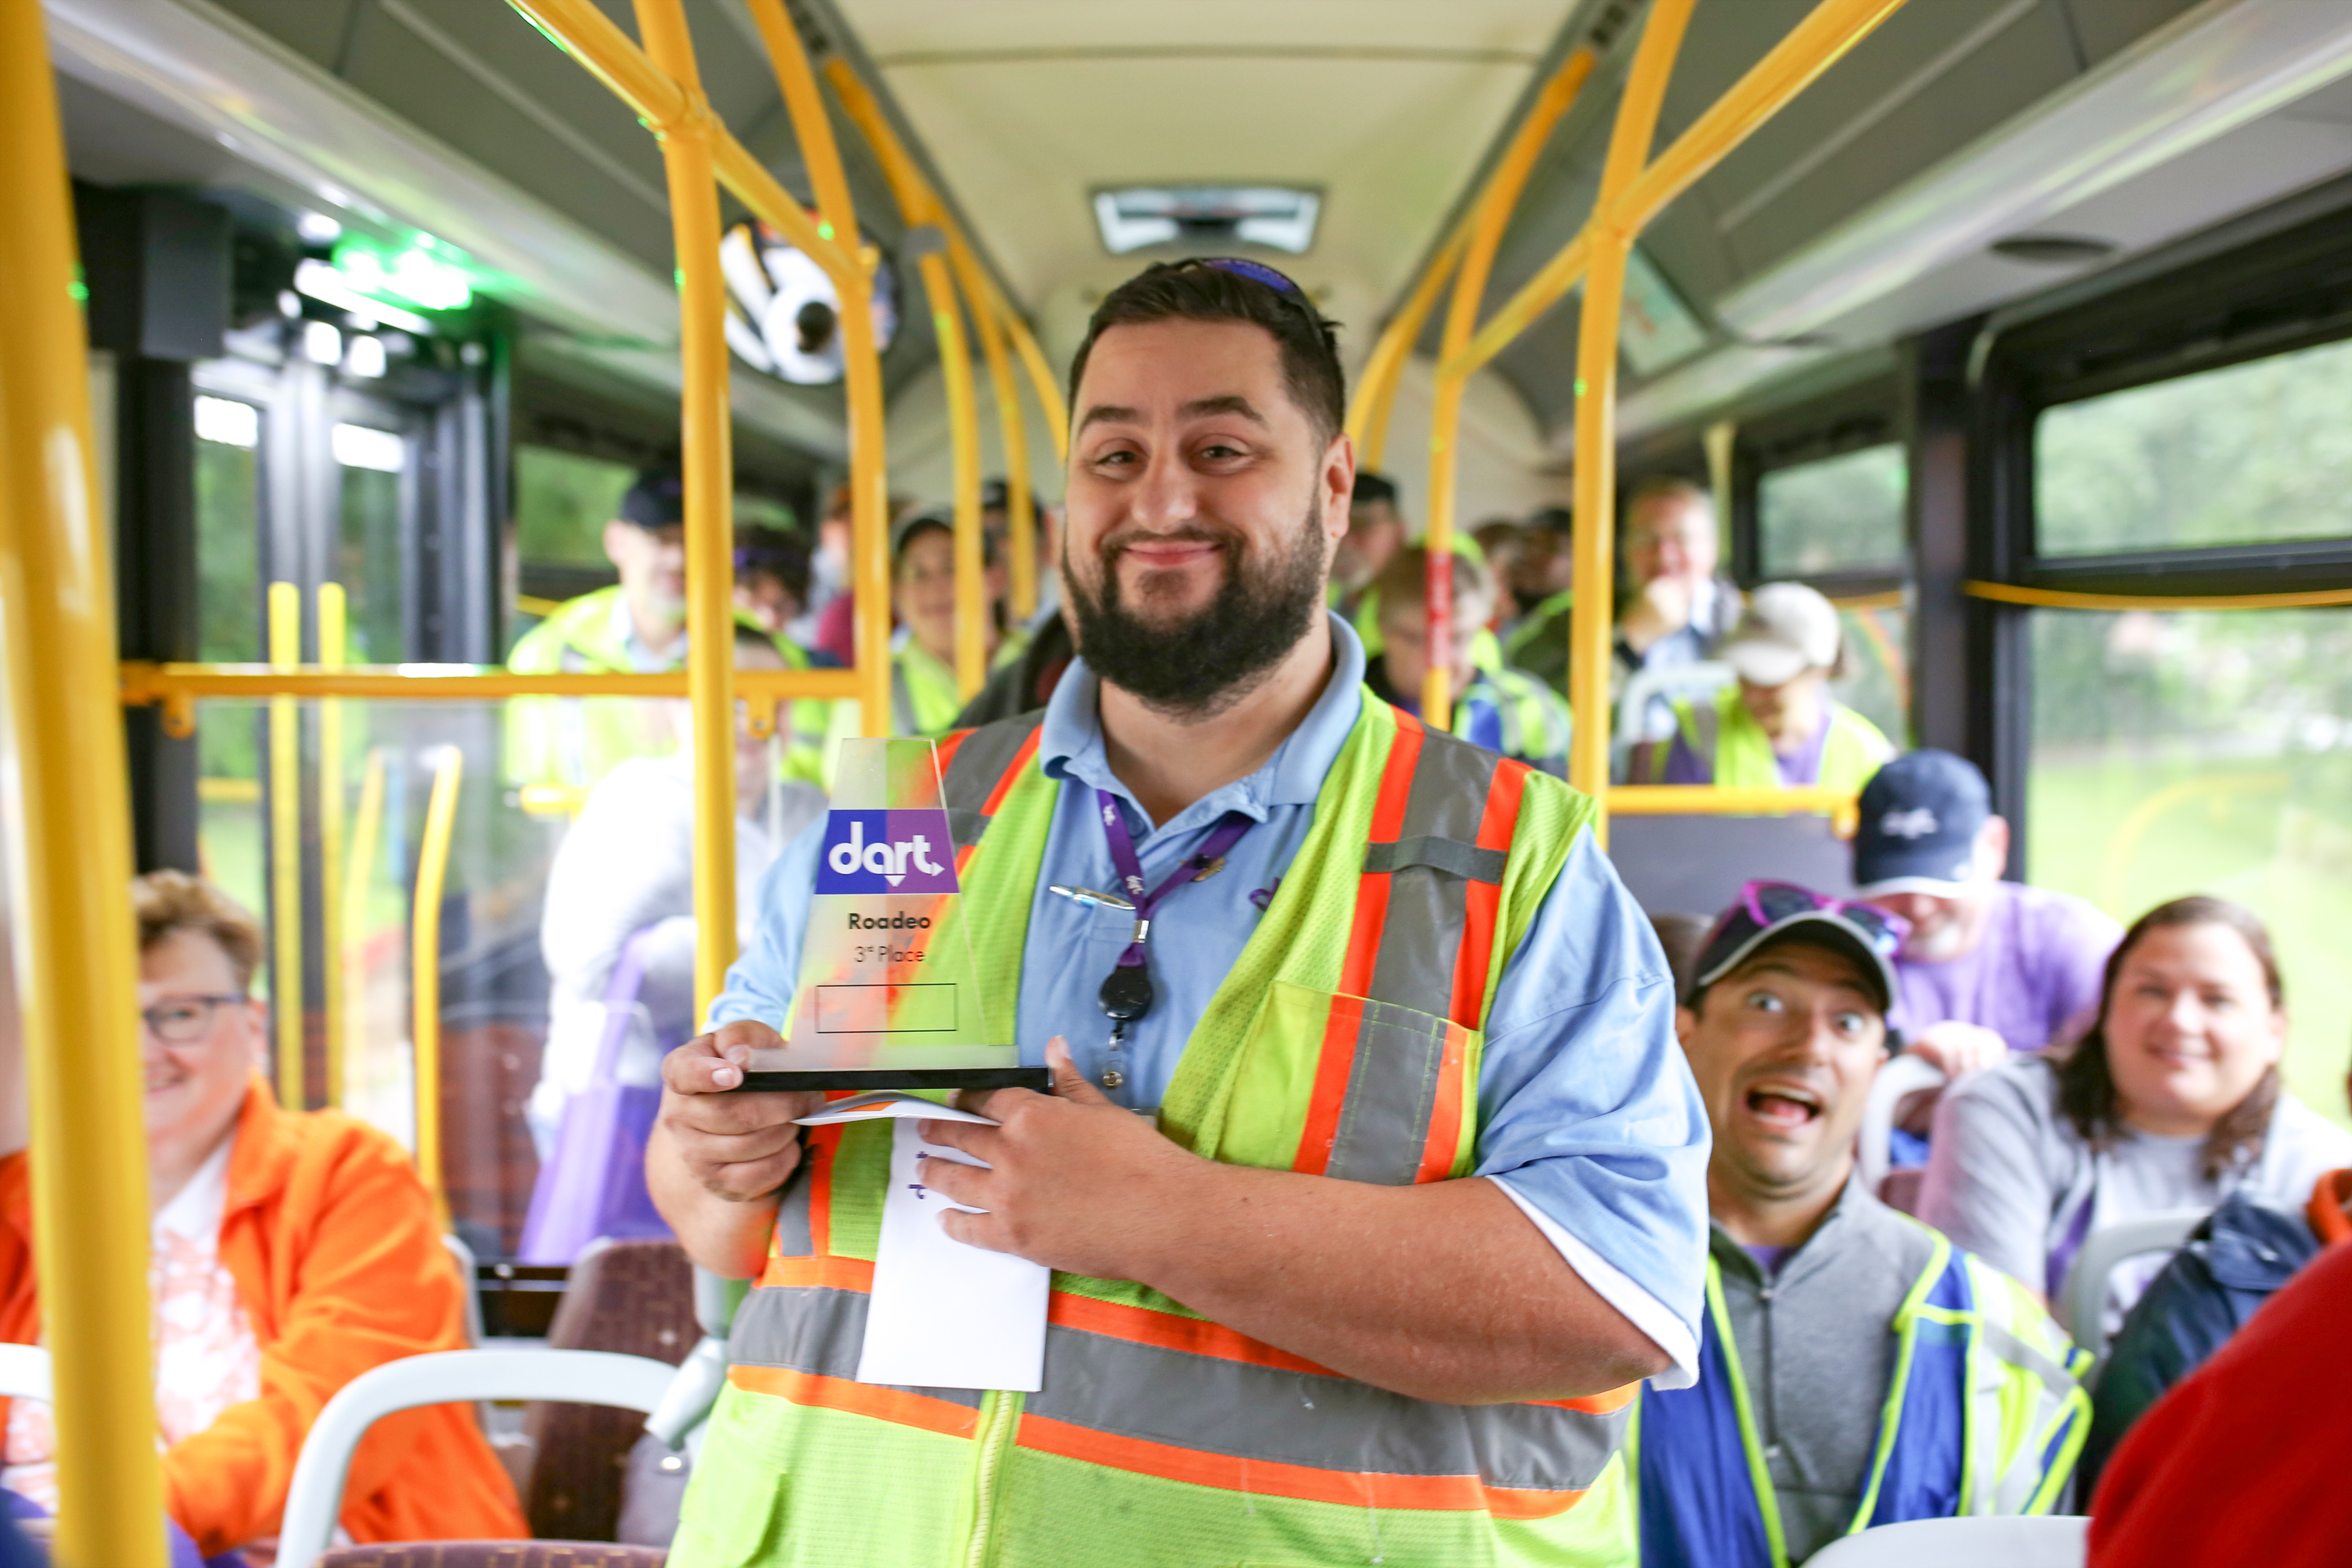 Bus operator winning award for driving skills